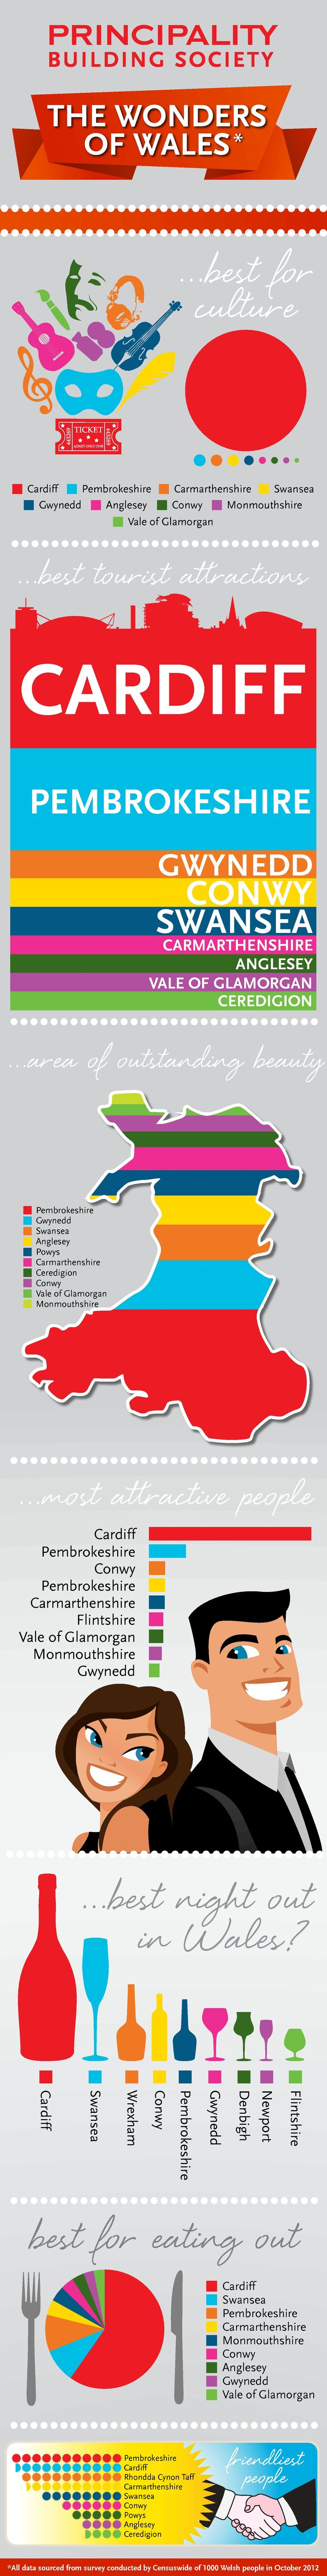 Wales is a country which has a rich culture, and boasts an array of tourist attractions. This infographic, designed by Principality Building Society,